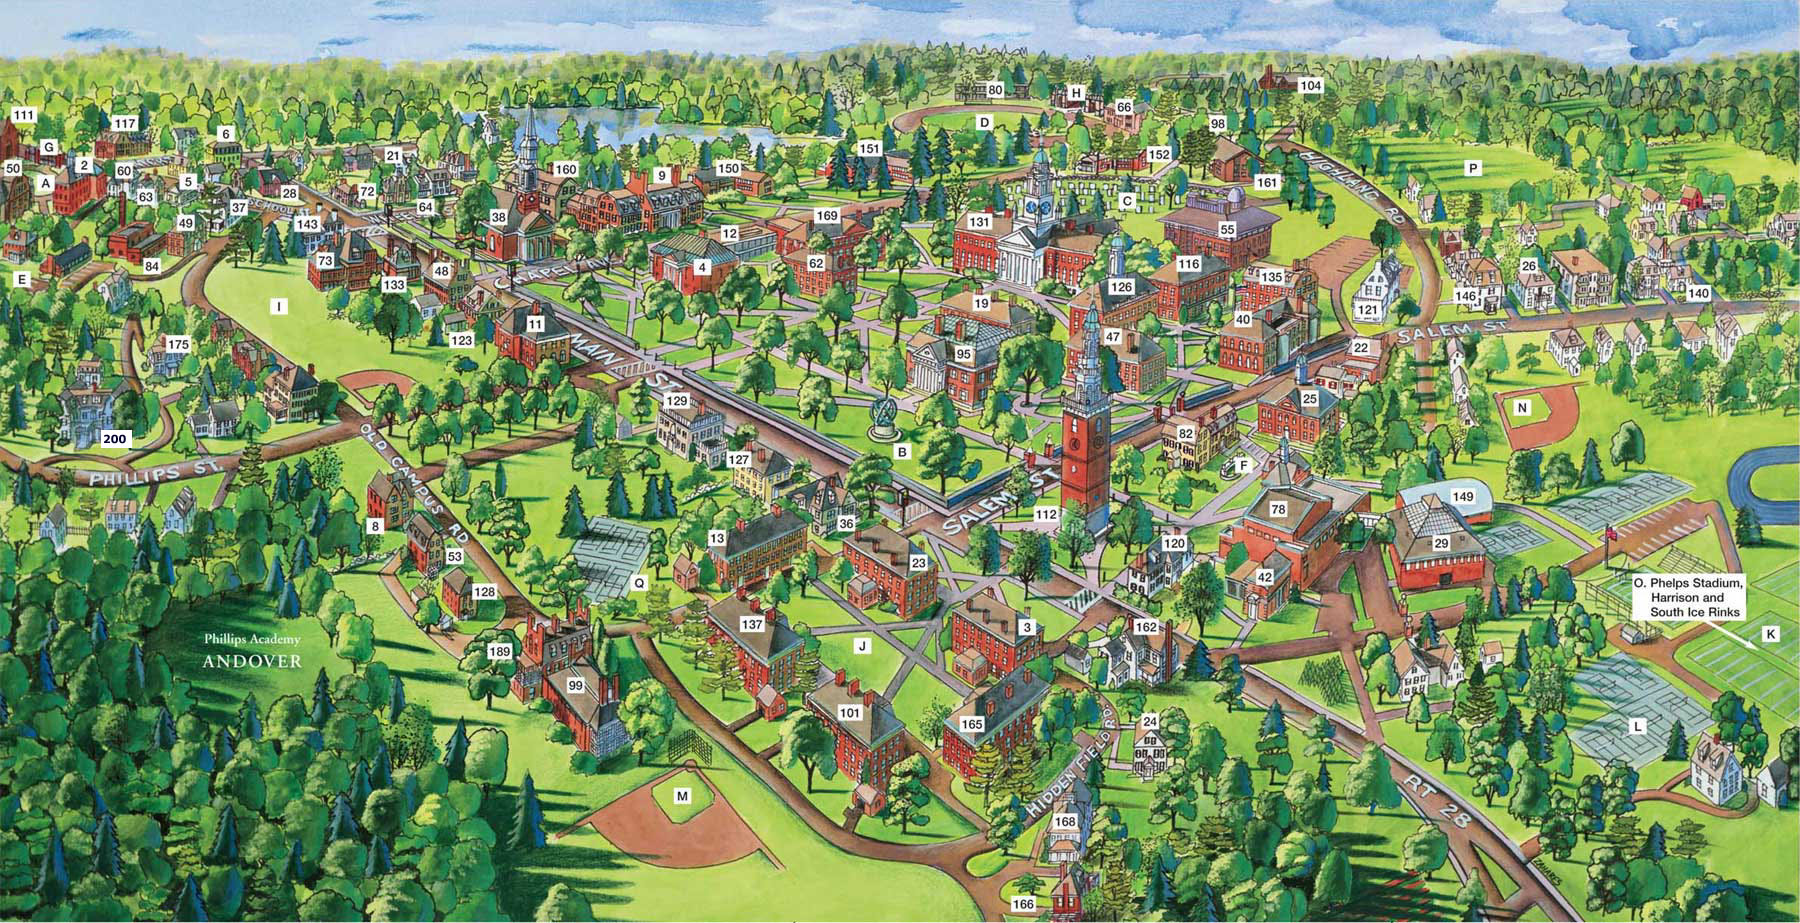 Phillips Exeter Academy Campus Map.Phillips Academy Andover Map